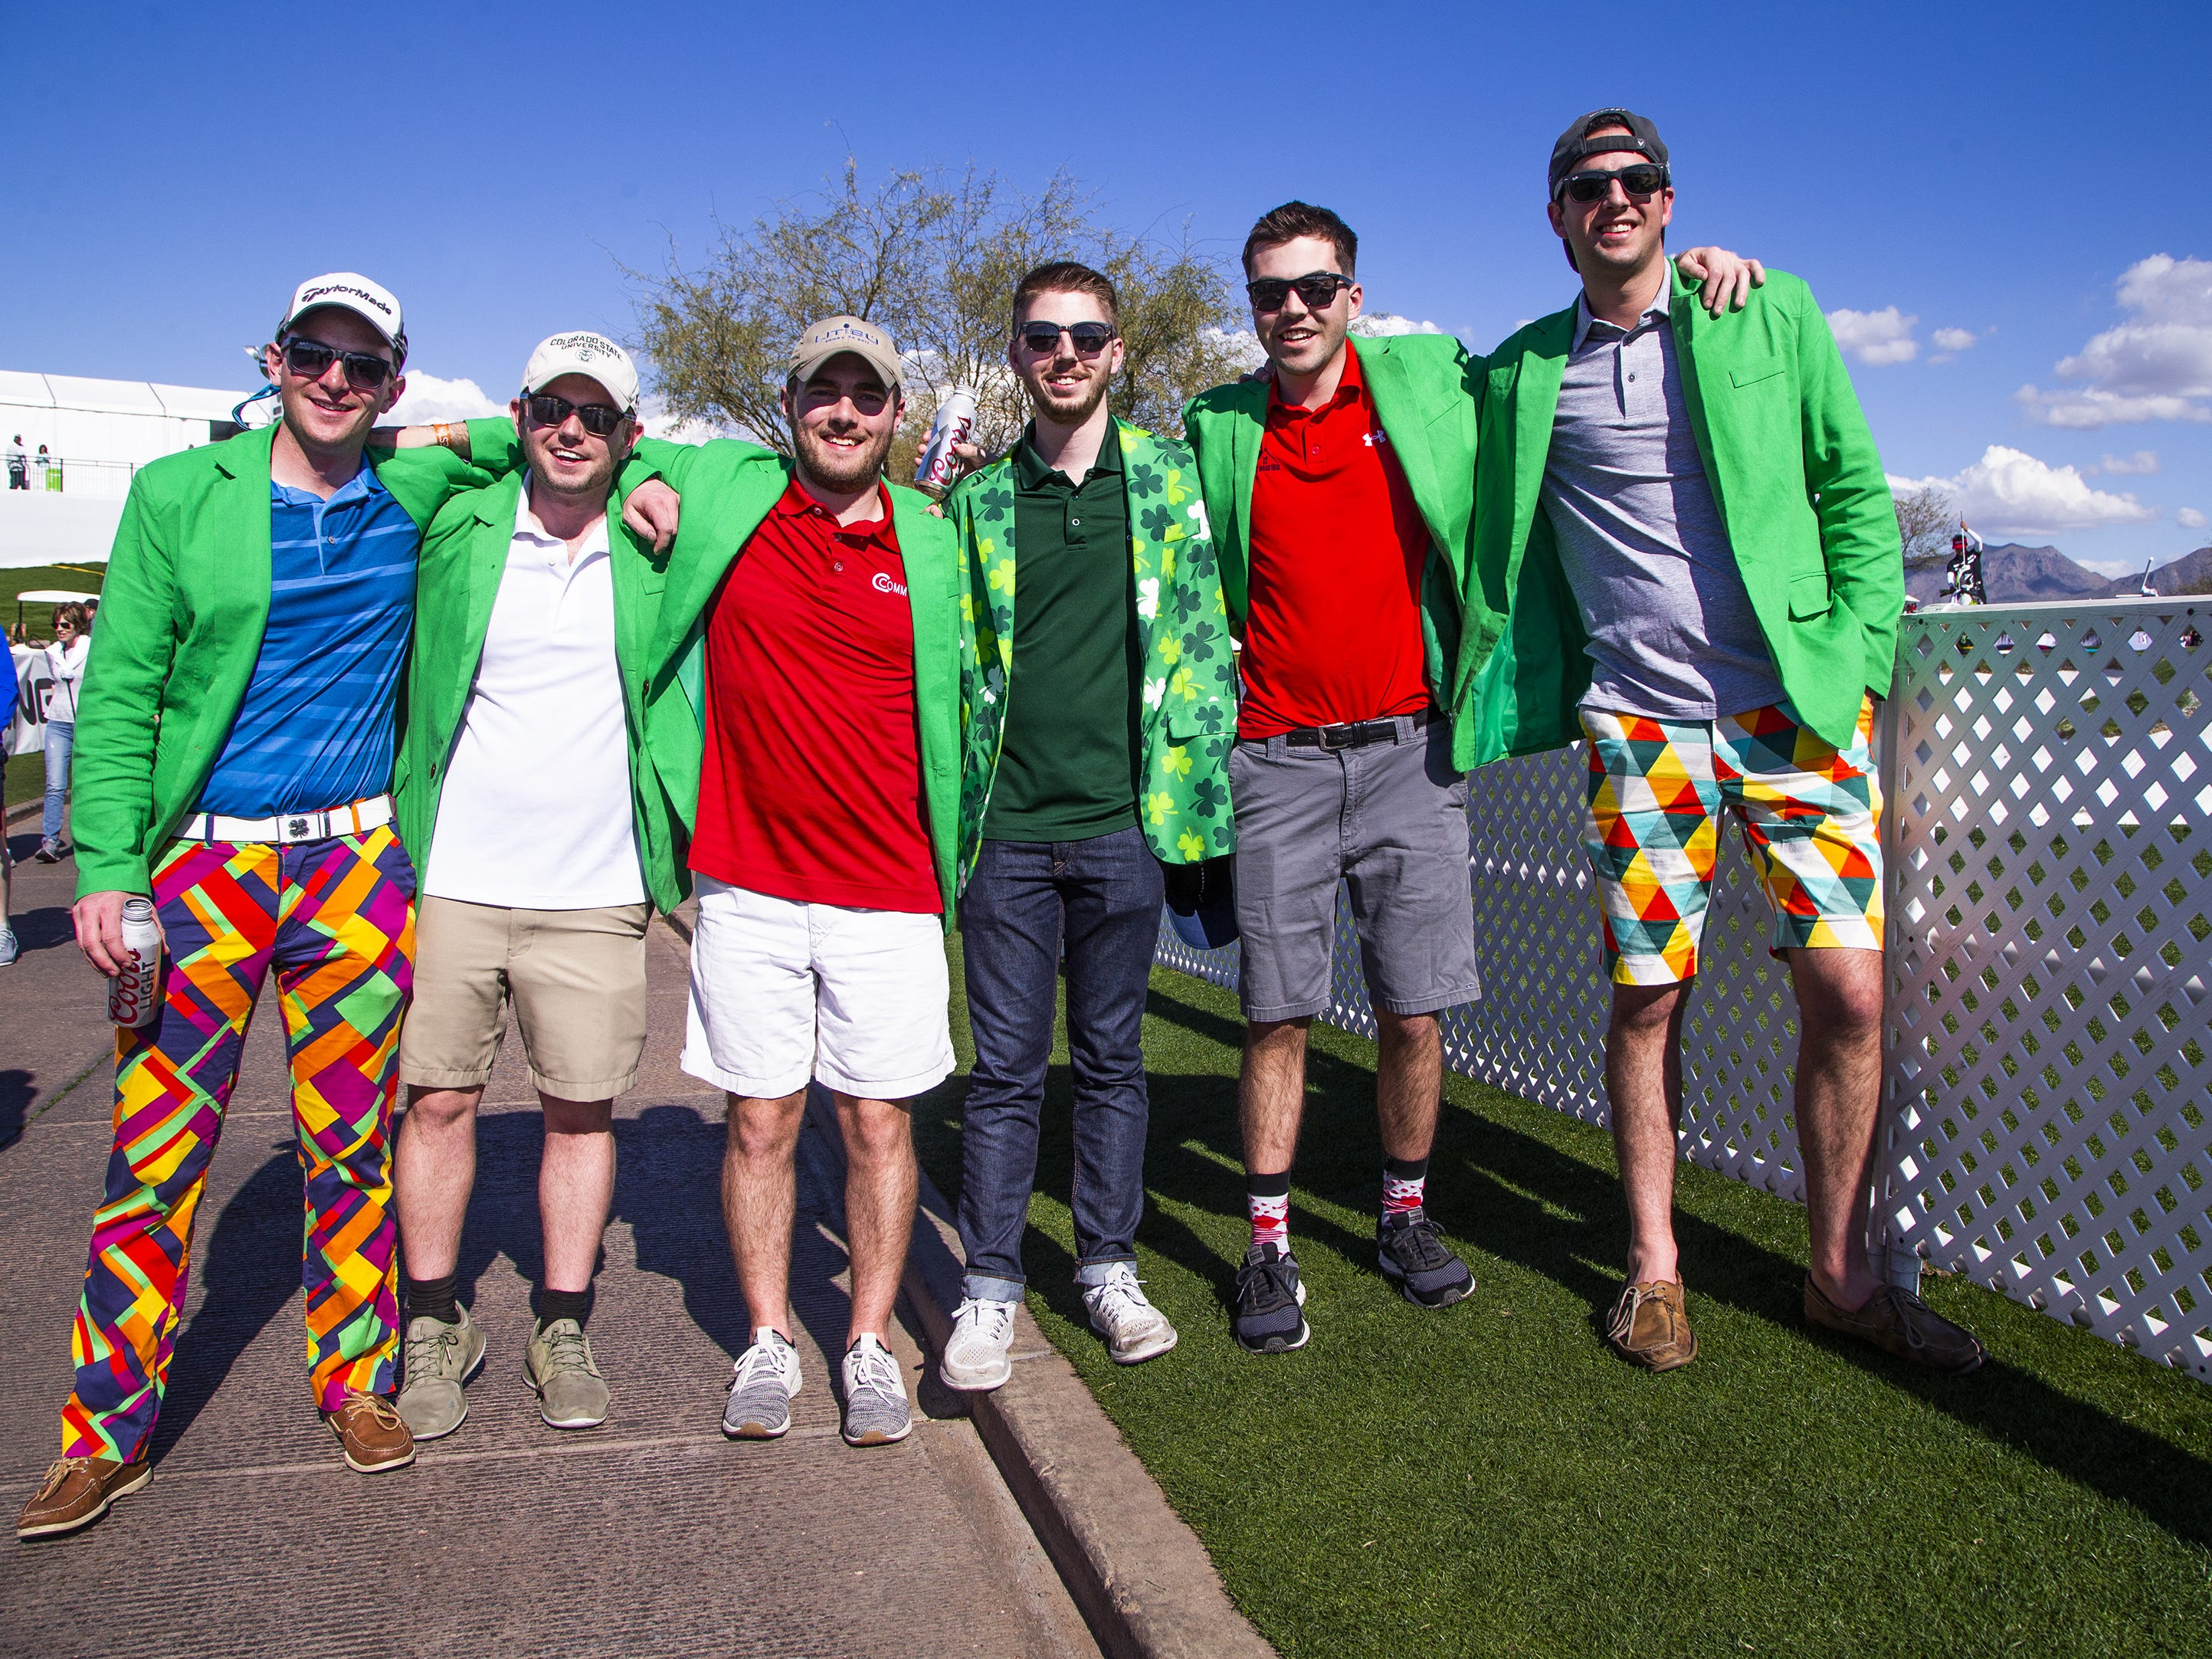 Friends all wear green jackets during the second round of the Waste Management Phoenix Open at the TPC Scottsdale, Friday, February 1, 2019.  From left to right are; Ian Rice, 24, Denver, Colorado, Scott Drees, 23, Covington, Kentucky, Jacob Willard, 23, Austin, Texas, Austin Singletary, 24, Denver, Jack Langford, 23, Centennial, Colorado,  and Patrrick Edler, 24, Denver.